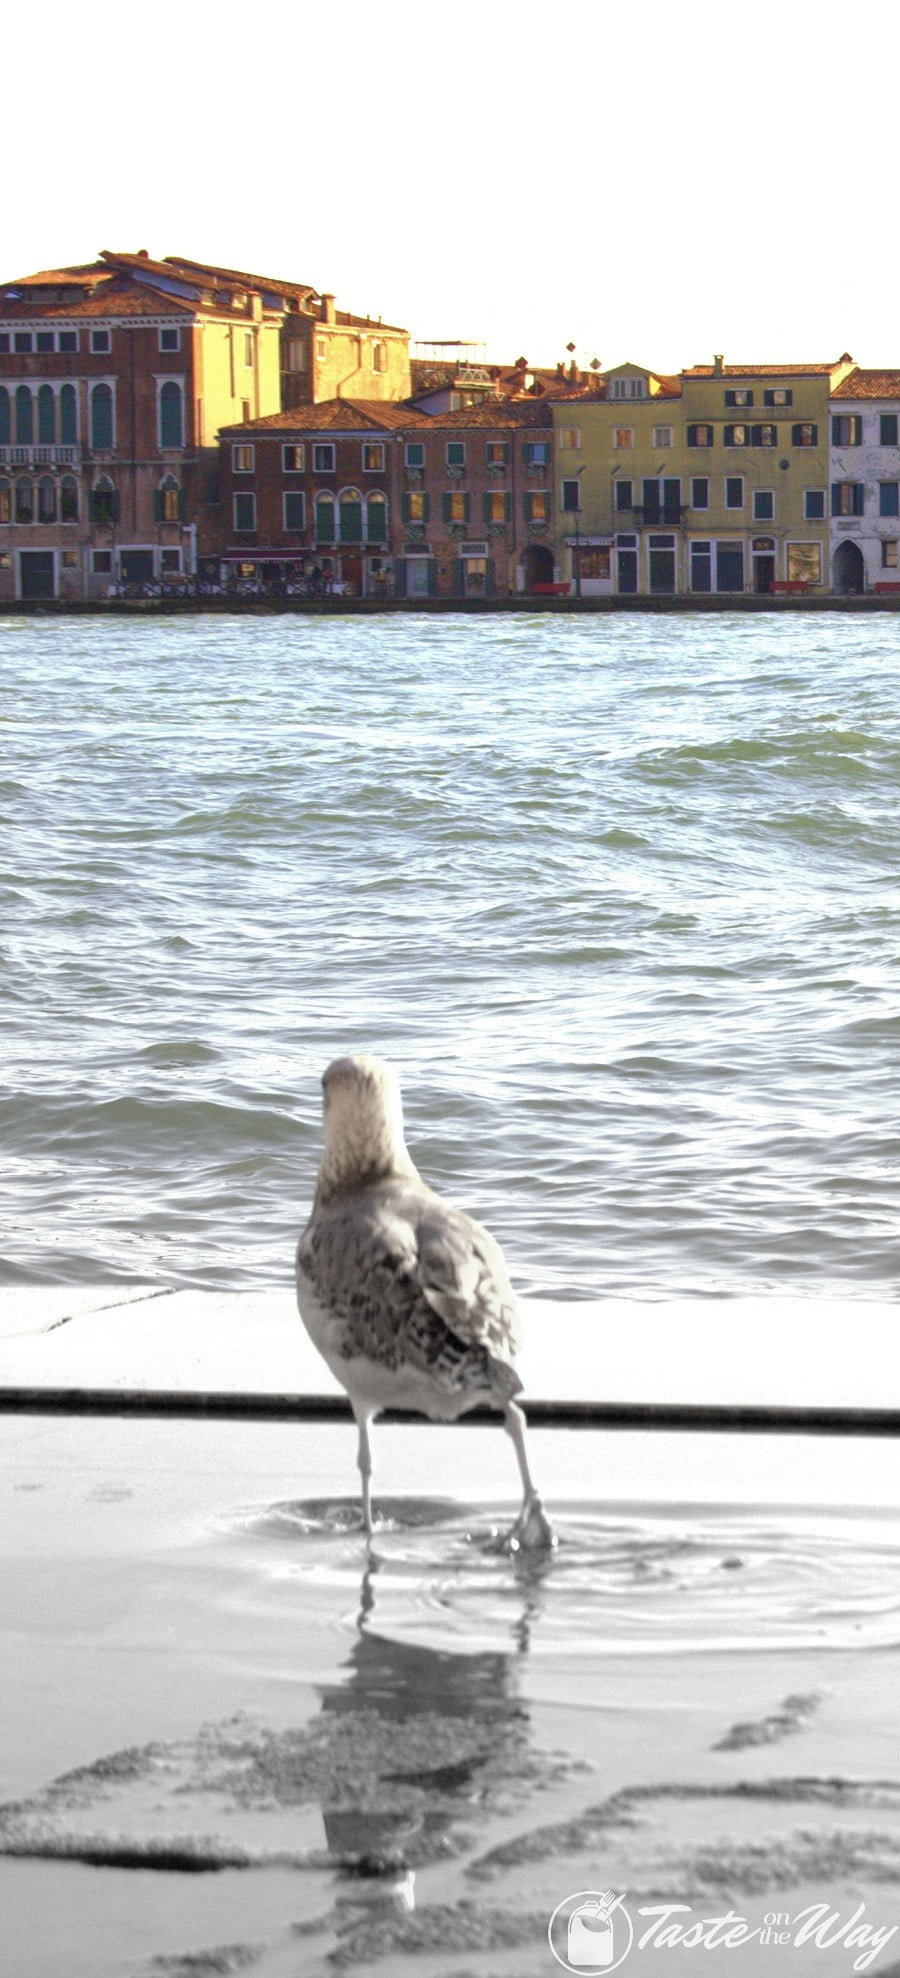 One of the top 10 fun #ThingsToDo in #Venice, #Italy is to observe the local critters. Check out for more! #travel #photography @tasteontheway